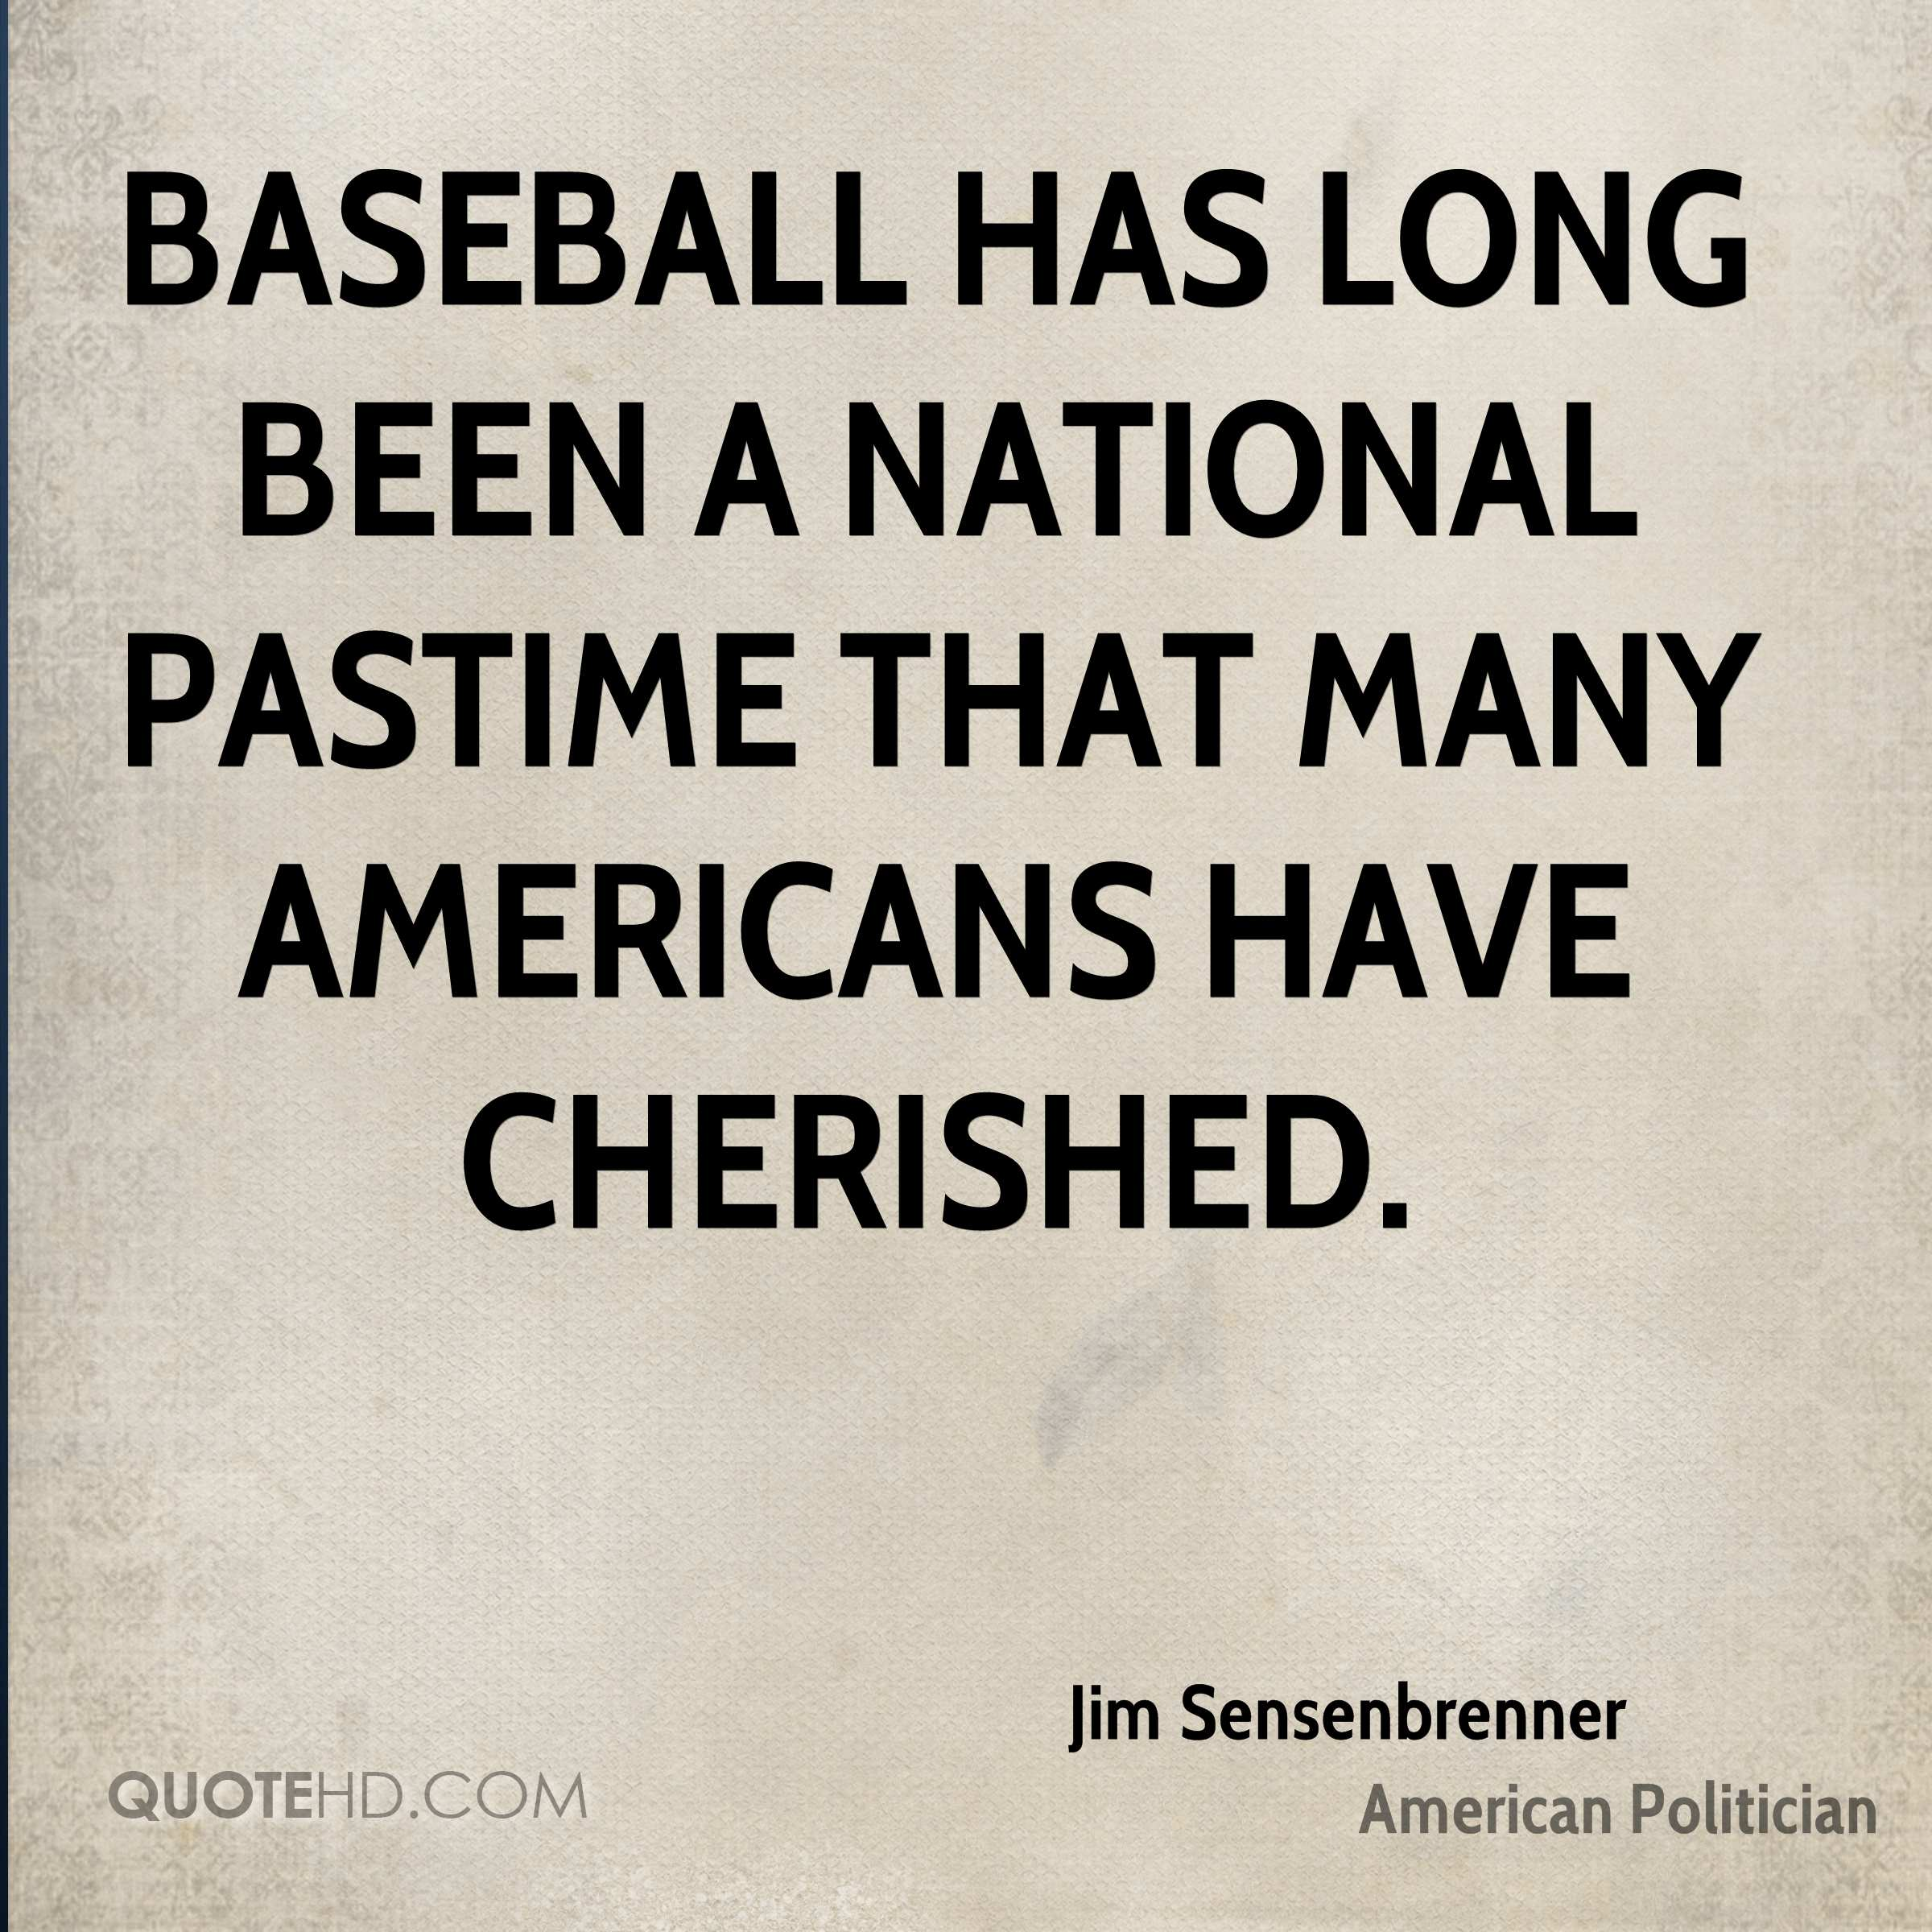 Baseball has long been a national pastime that many Americans have cherished.